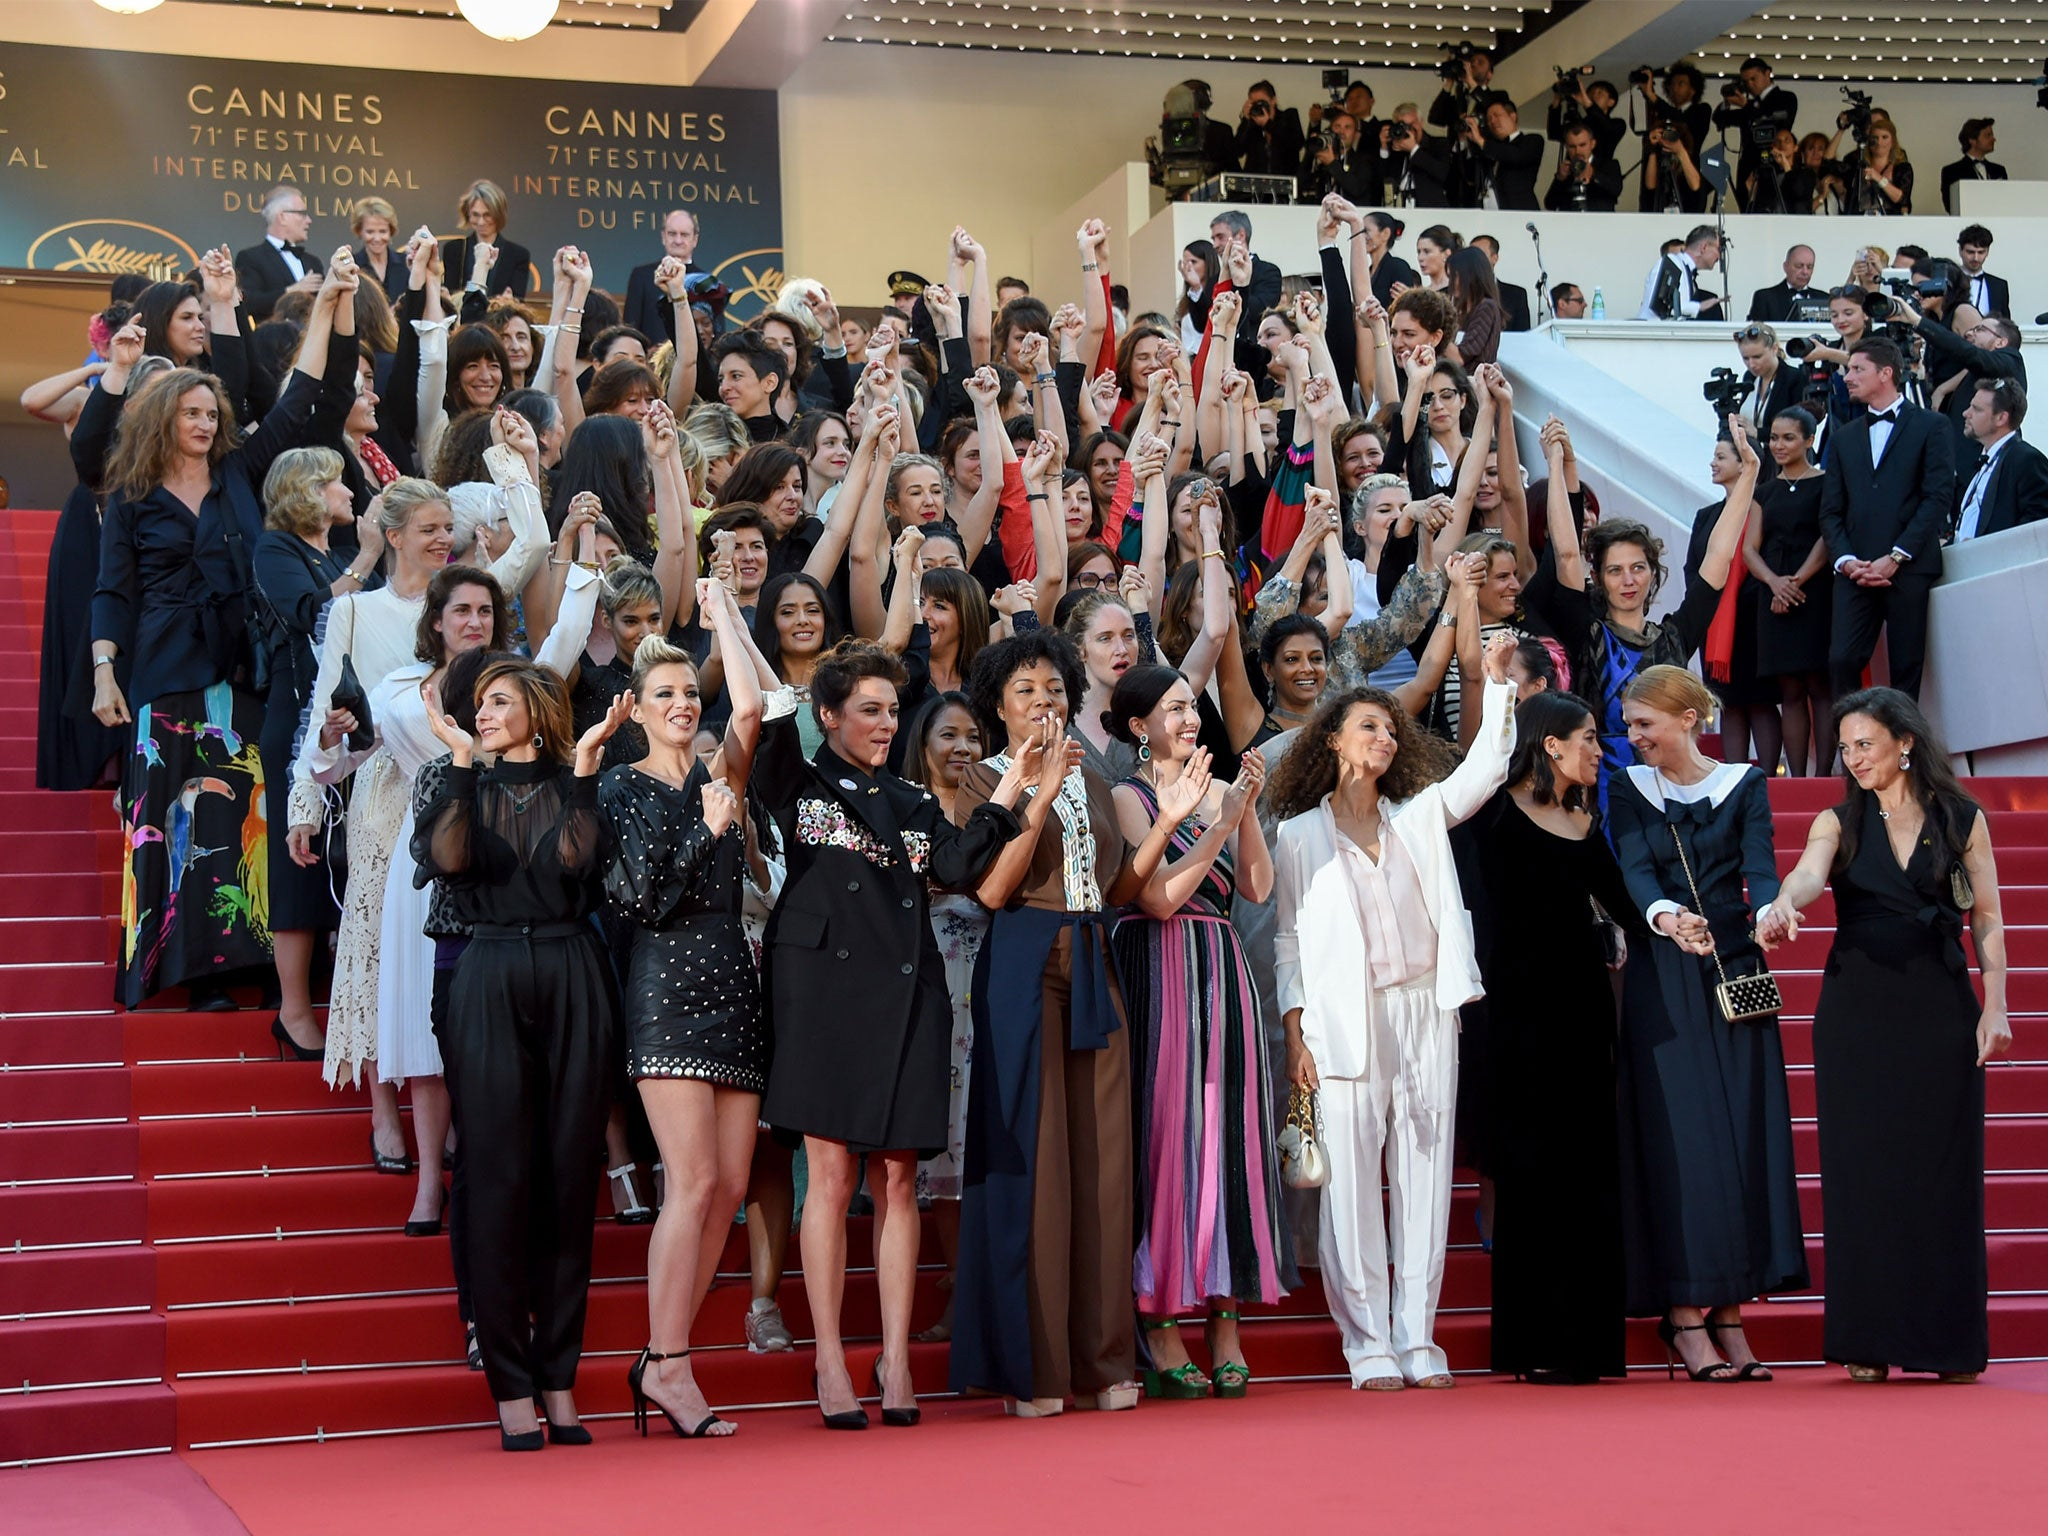 Cannes 2018: Cate Blanchett leads protest at French film festival after Hollywood sexual harassment scandal